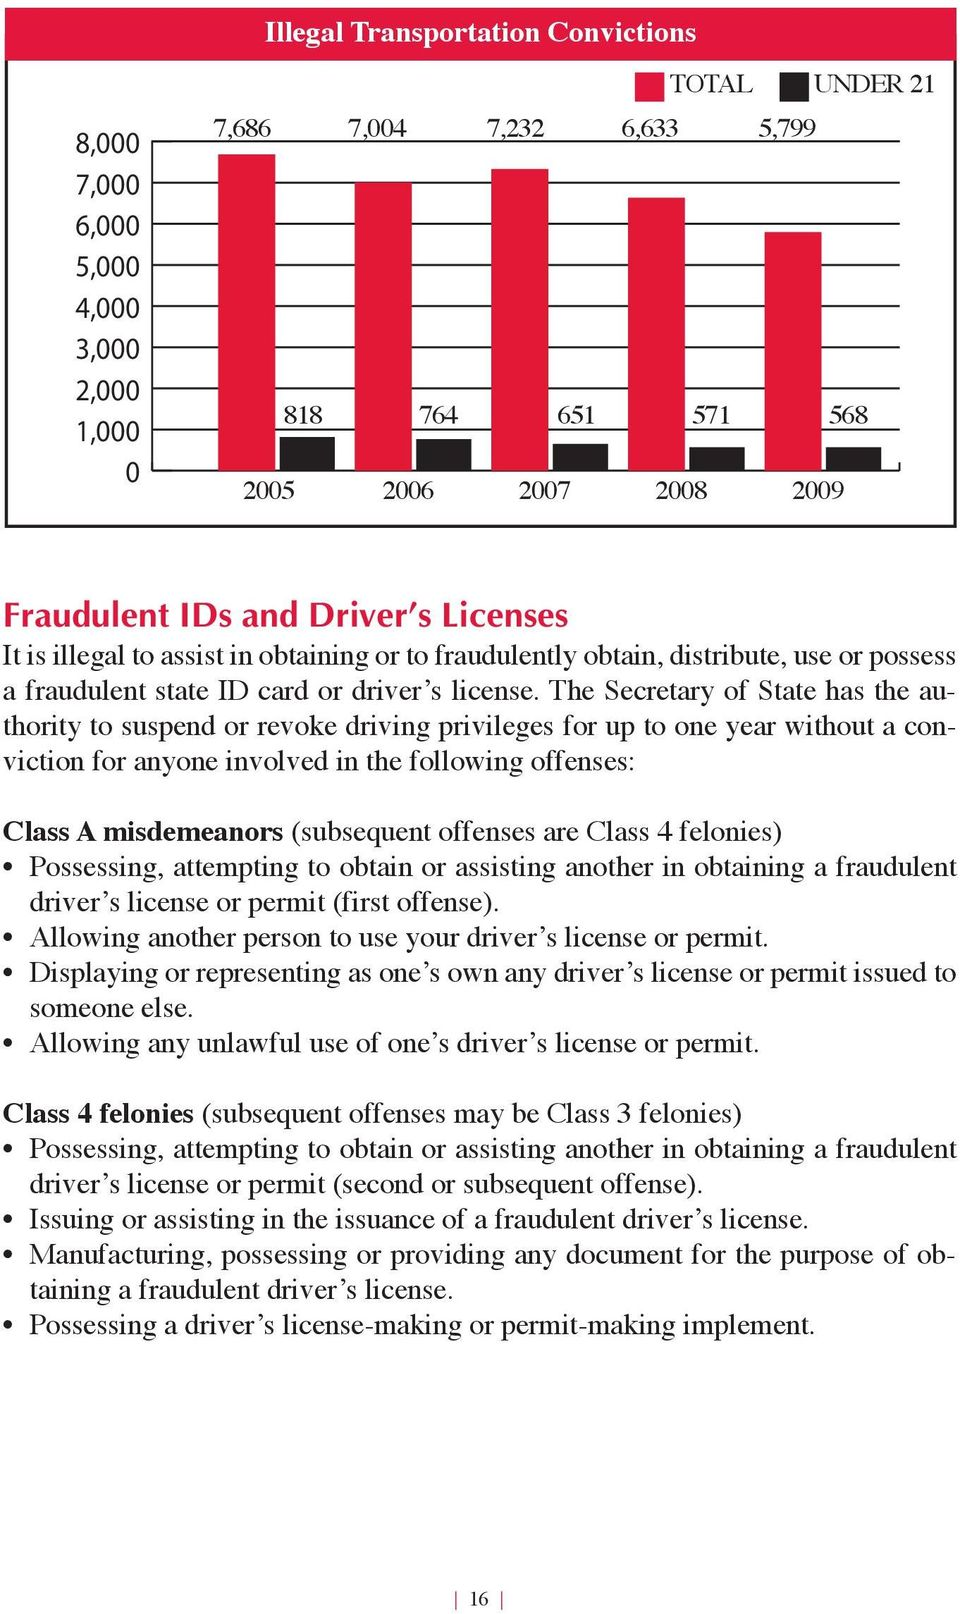 The Secretary of State has the authority to suspend or revoke driving privileges for up to one year without a conviction for anyone involved in the following offenses: Class A misdemeanors